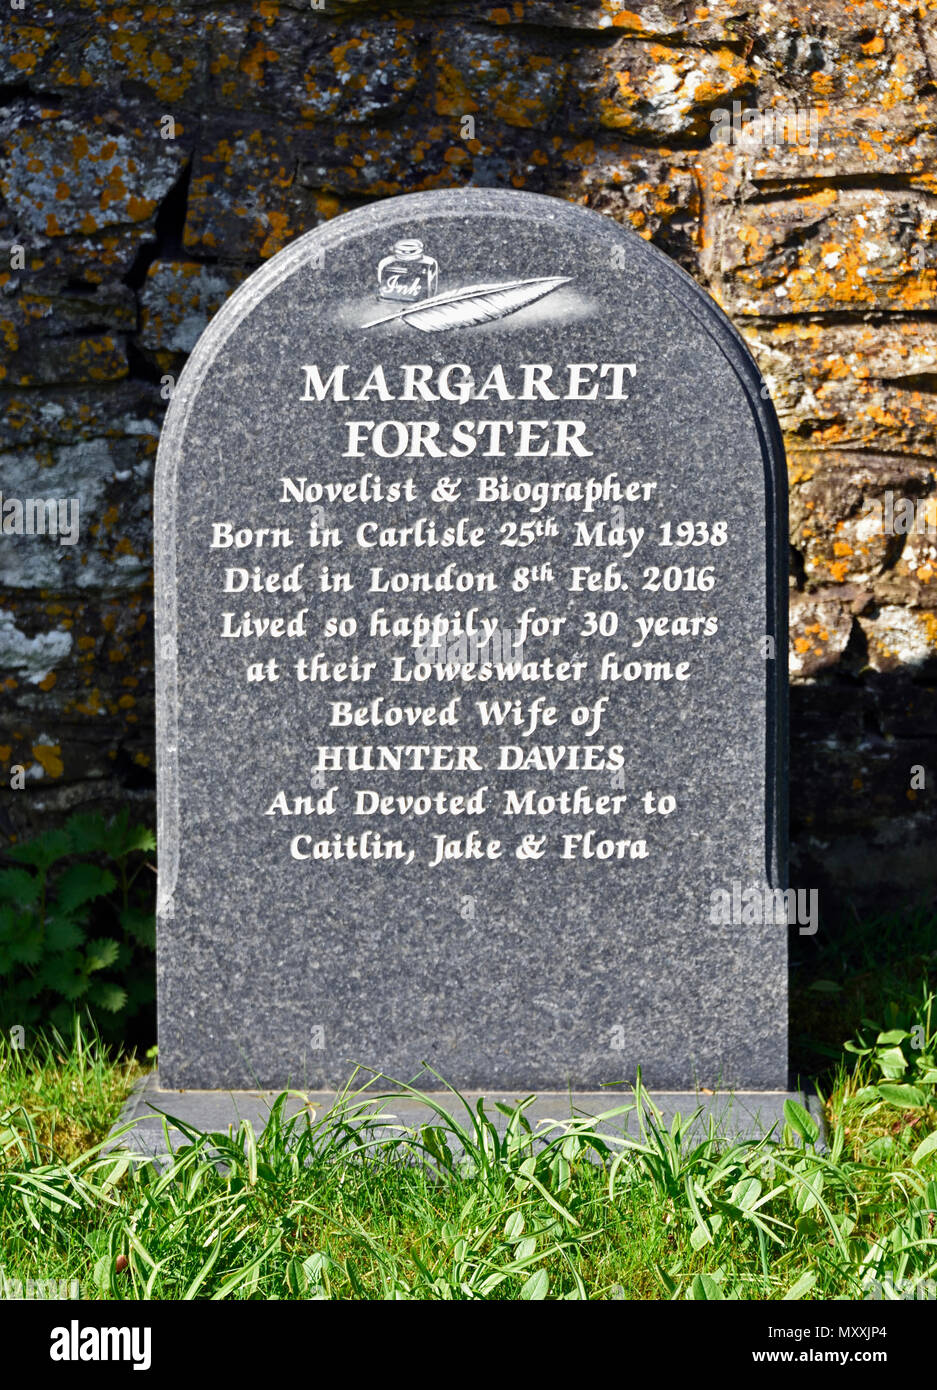 Grave of Margaret Forster, novelist and biographer. Church of Saint Bartholomew, Loweswater, Lake District National Park, Cumbria, England, United Kin - Stock Image